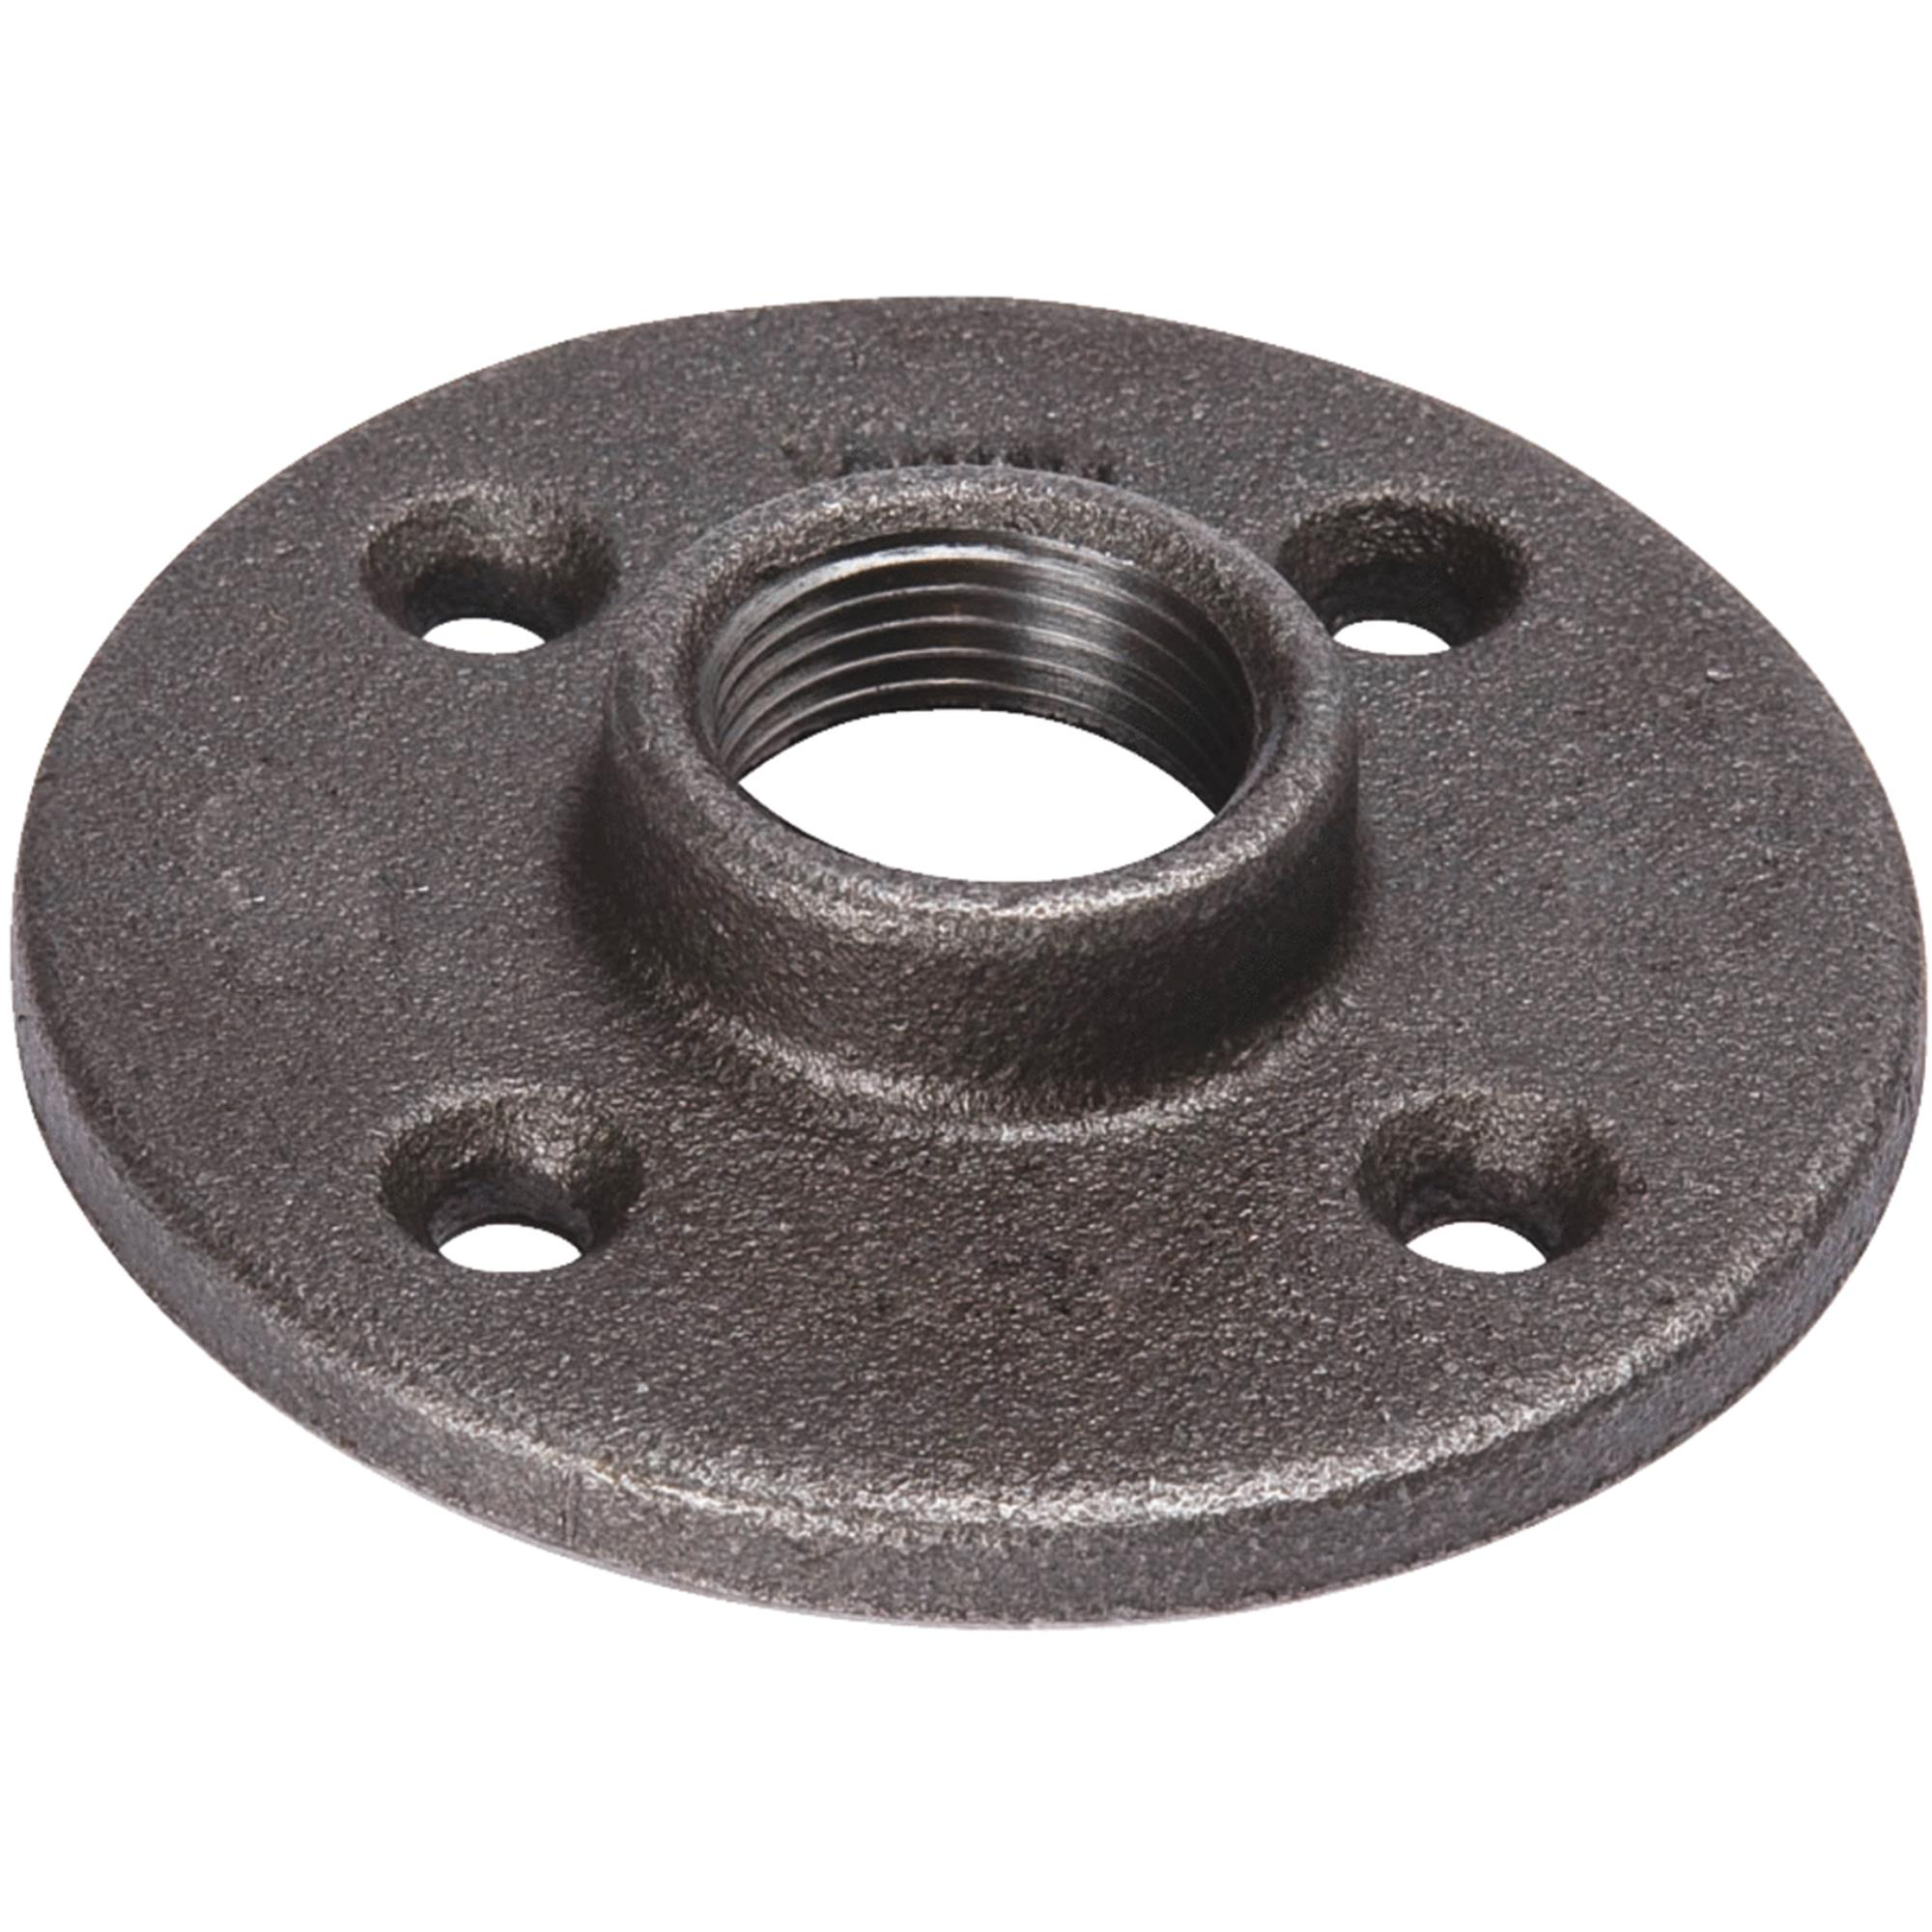 Black Iron Floor Flange